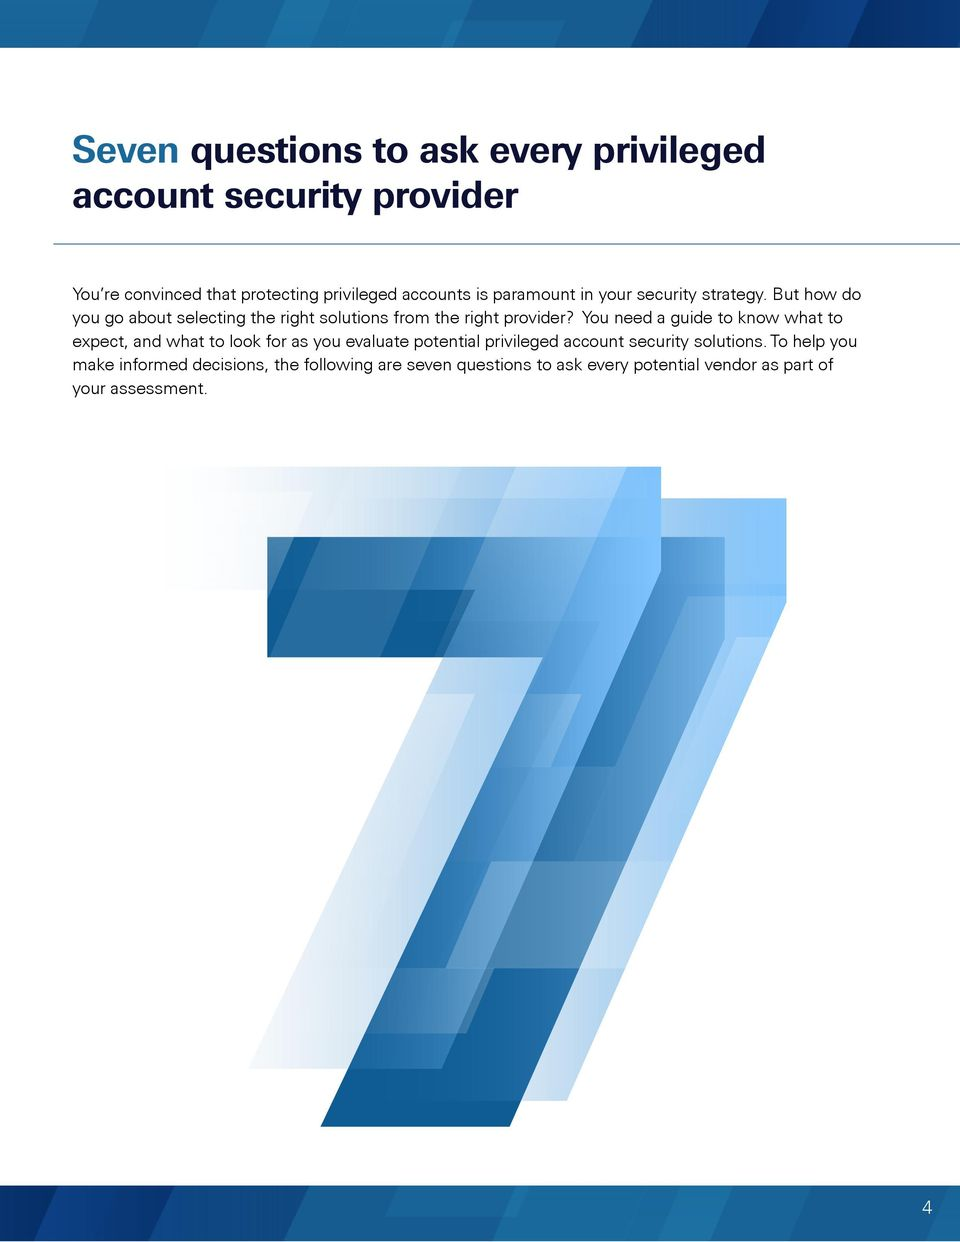 You need a guide to know what to expect, and what to look for as you evaluate potential privileged account security